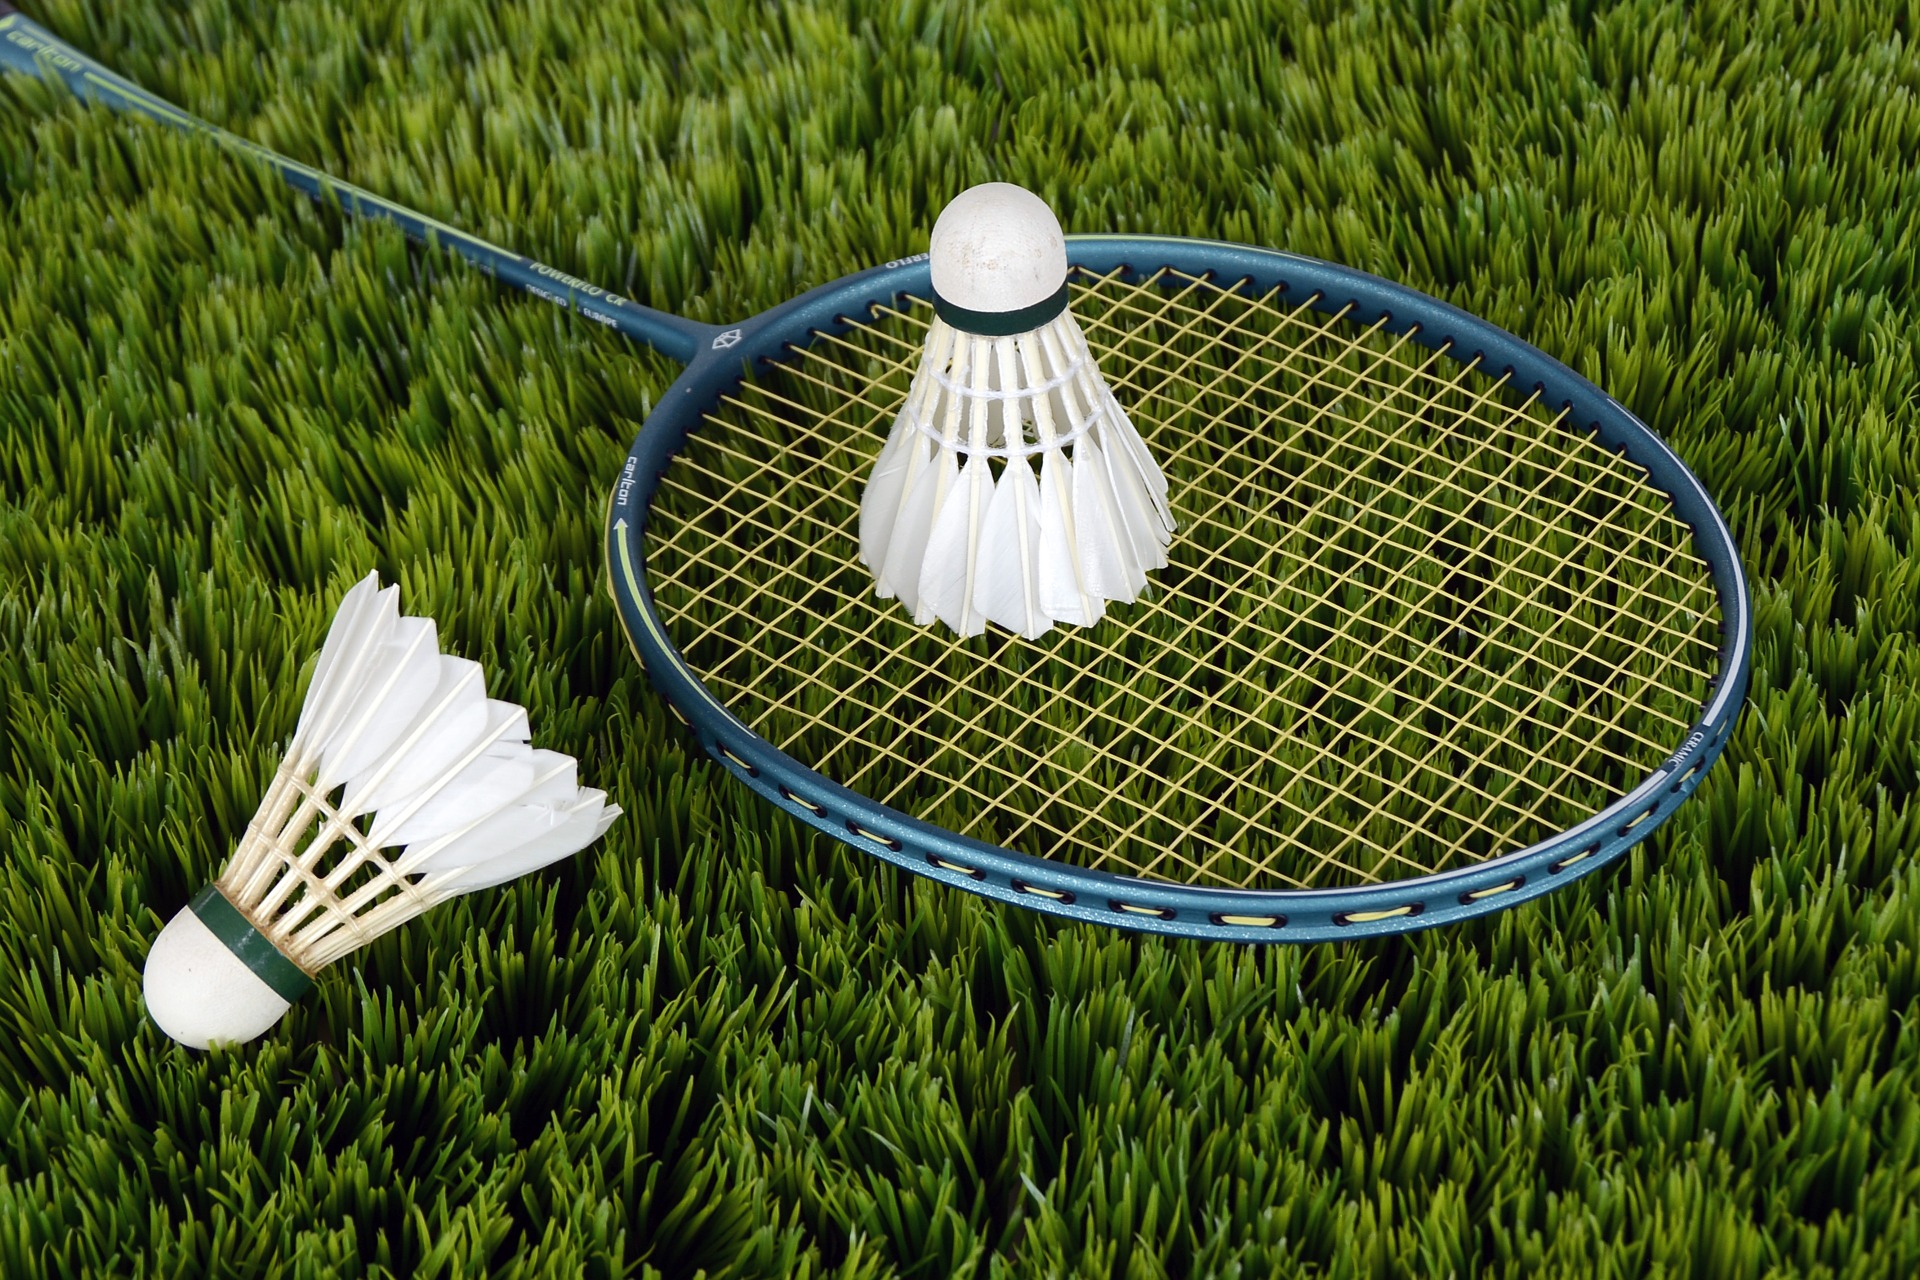 picture of two shuttlecocks and badminton racket